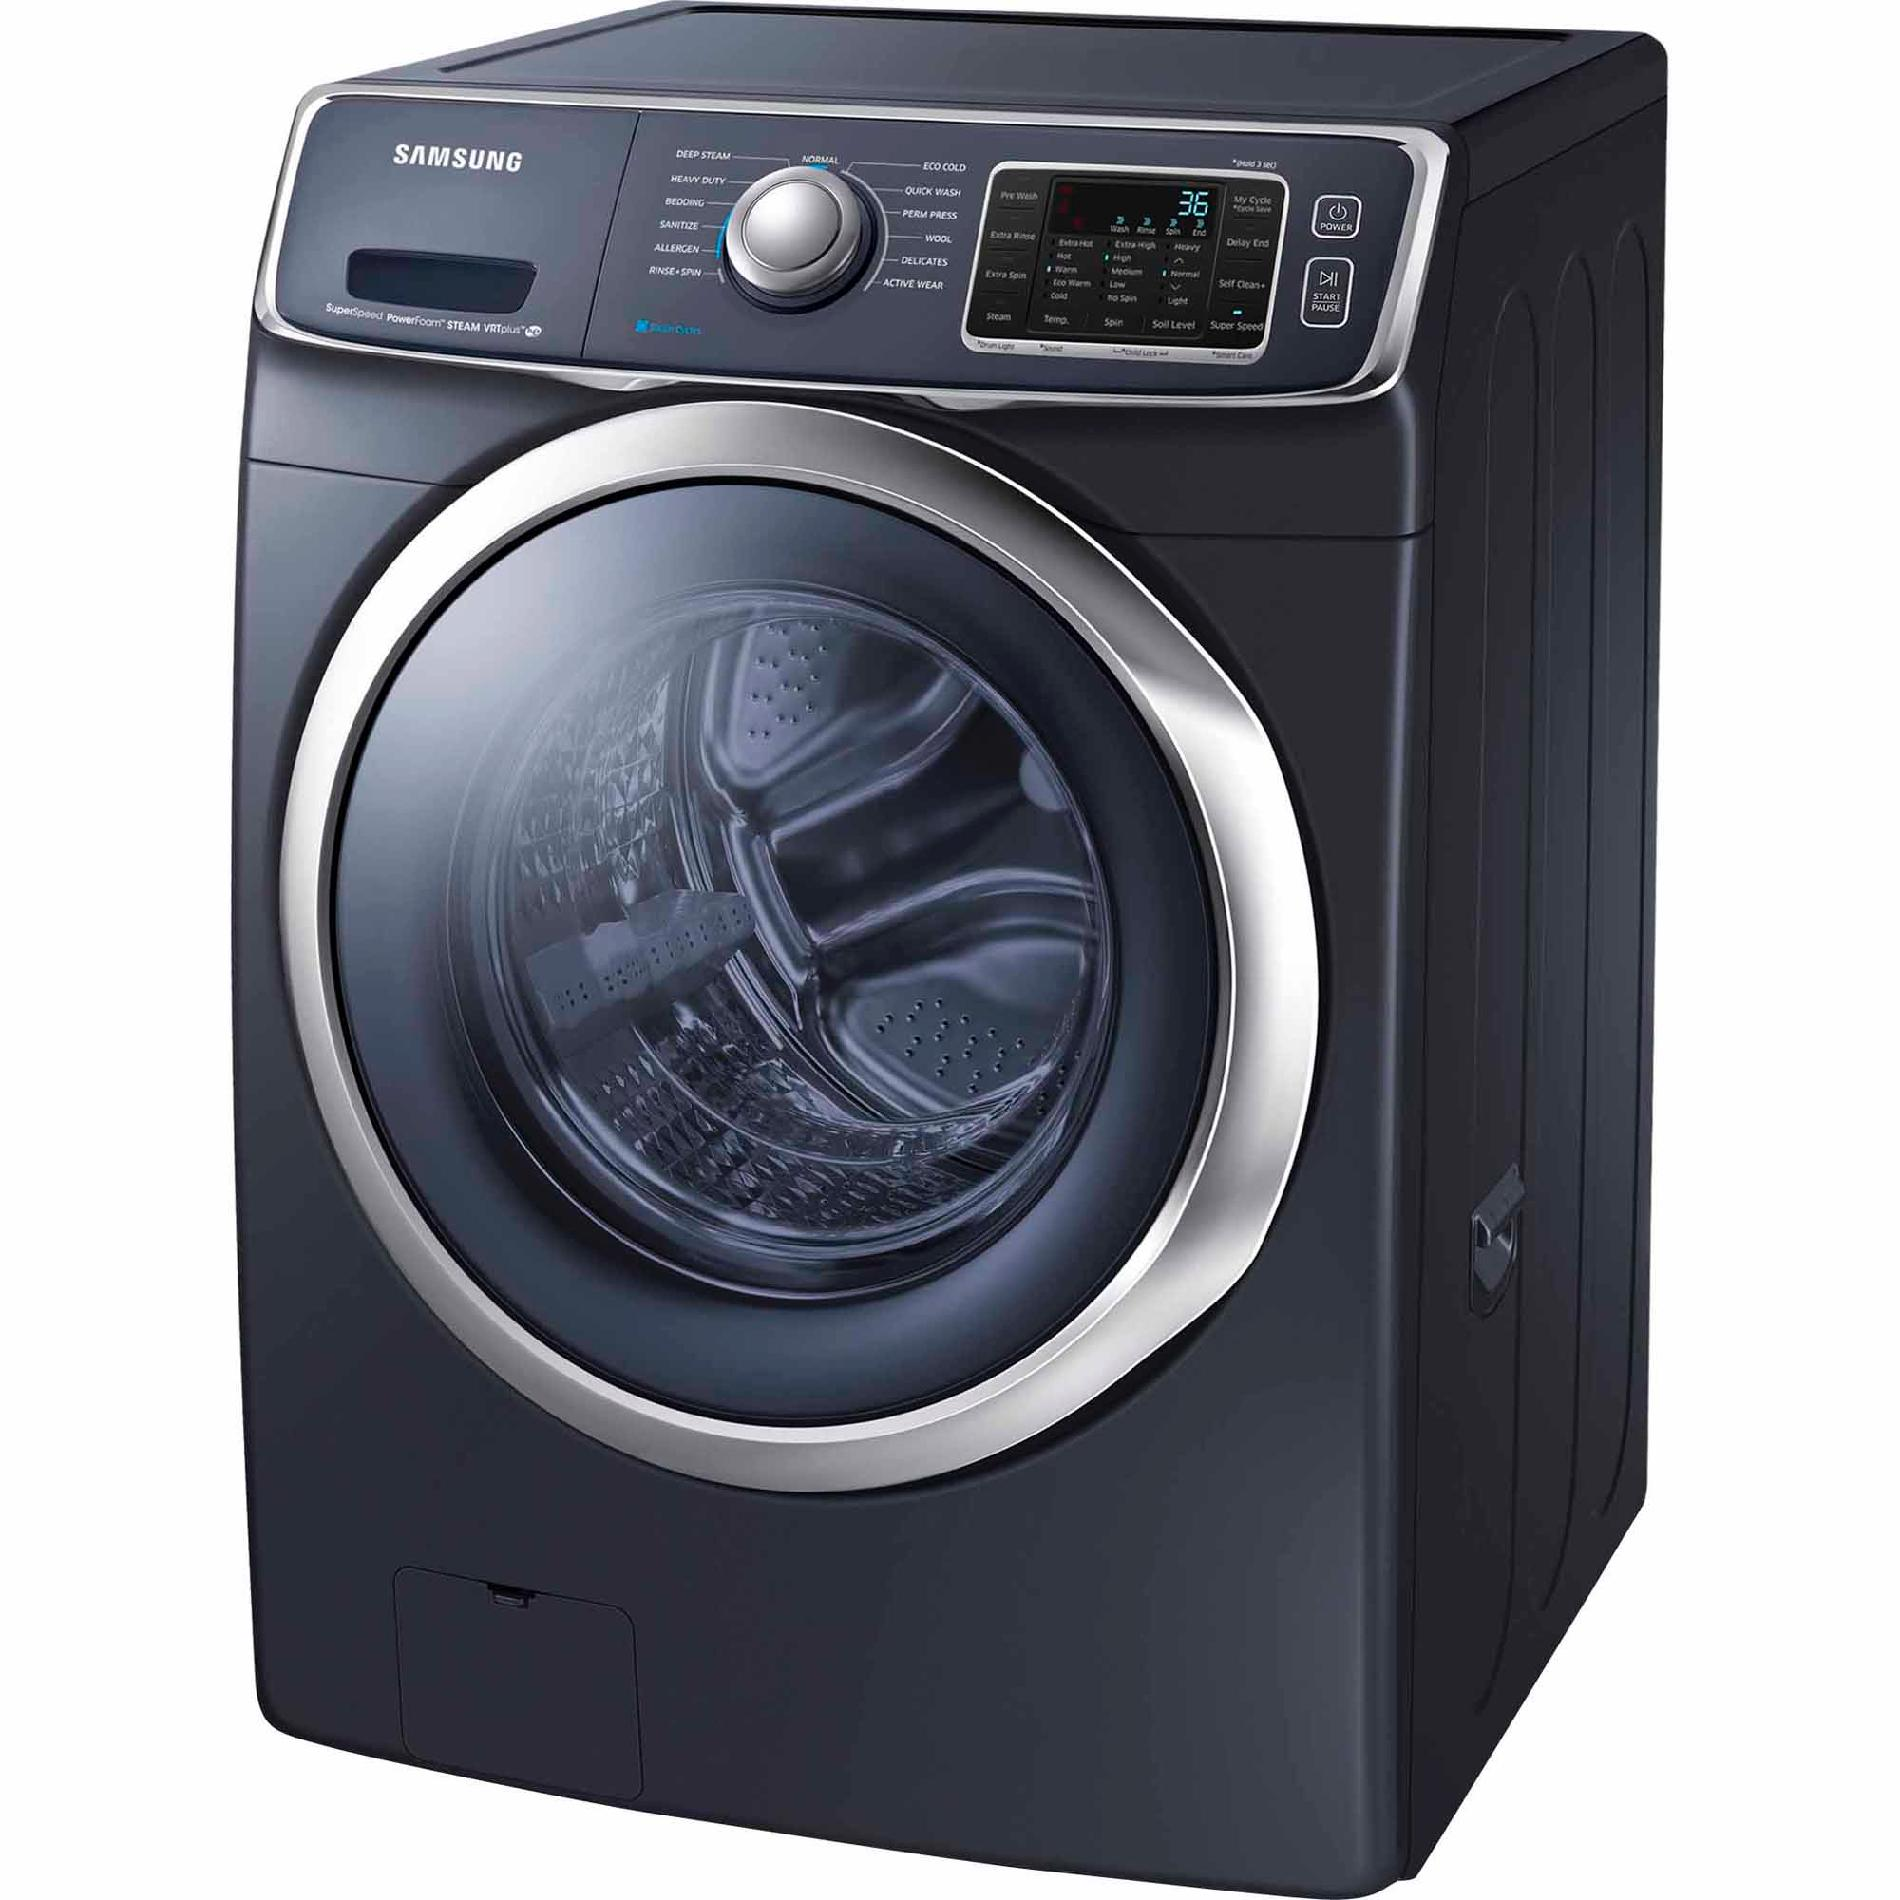 Samsung WF45H6300AG 4.5 cu. ft. Front-Load Washer - Onyx